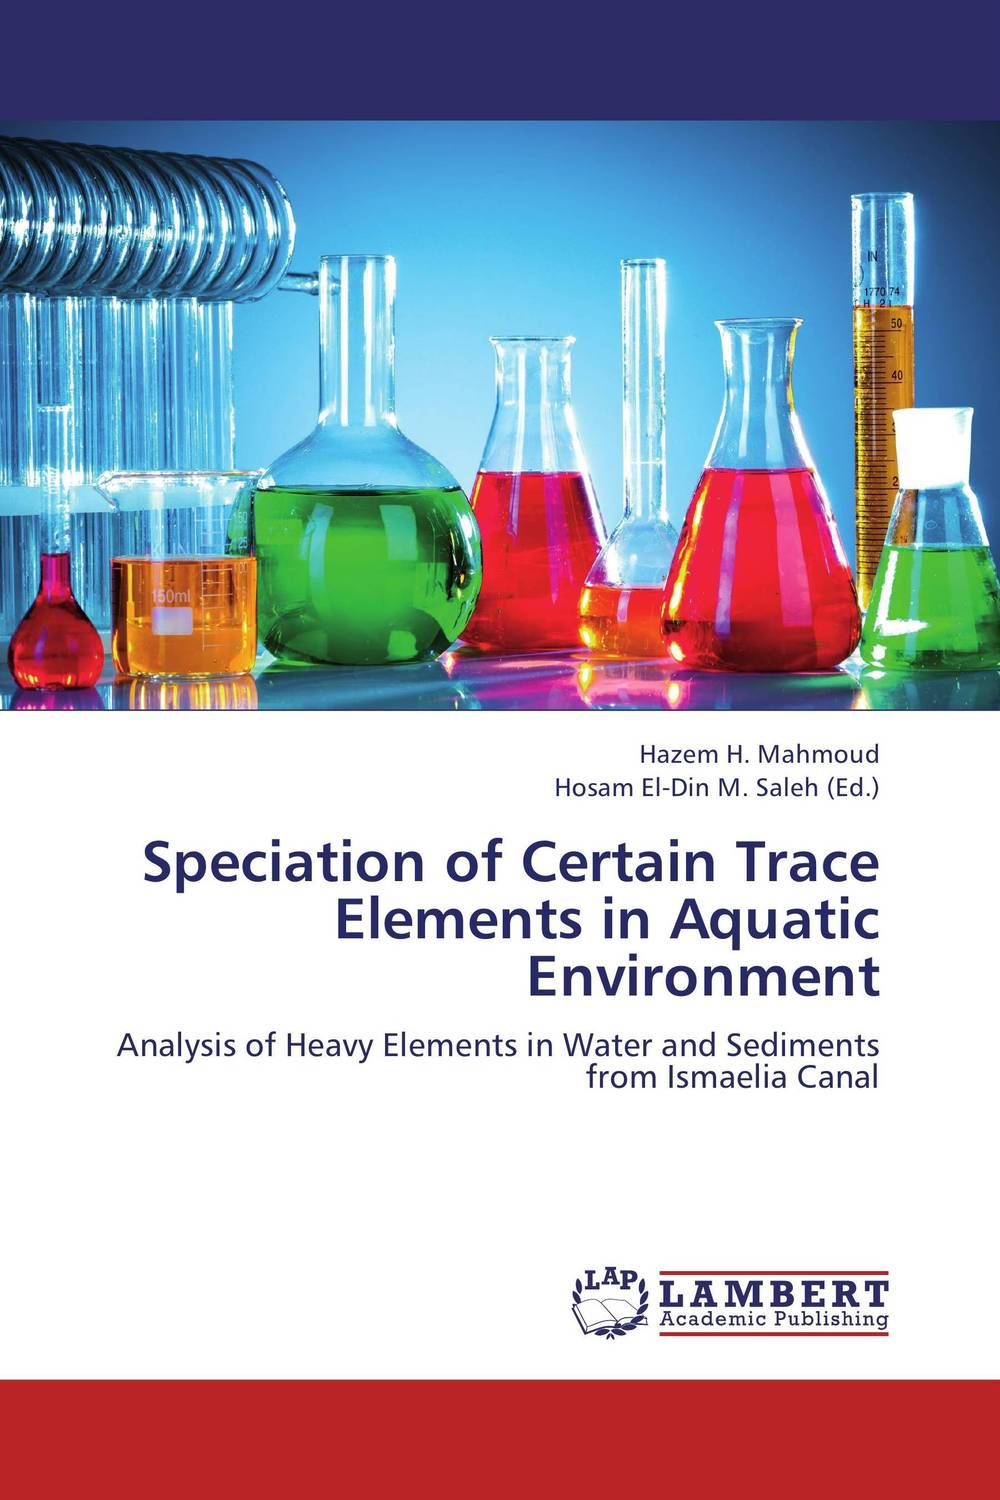 Speciation of Certain Trace Elements in Aquatic Environment atomic absorption spectrophotometer atomic fluorescence spectrometer light source 1 2 type cu copper hollow cathode lampa1272